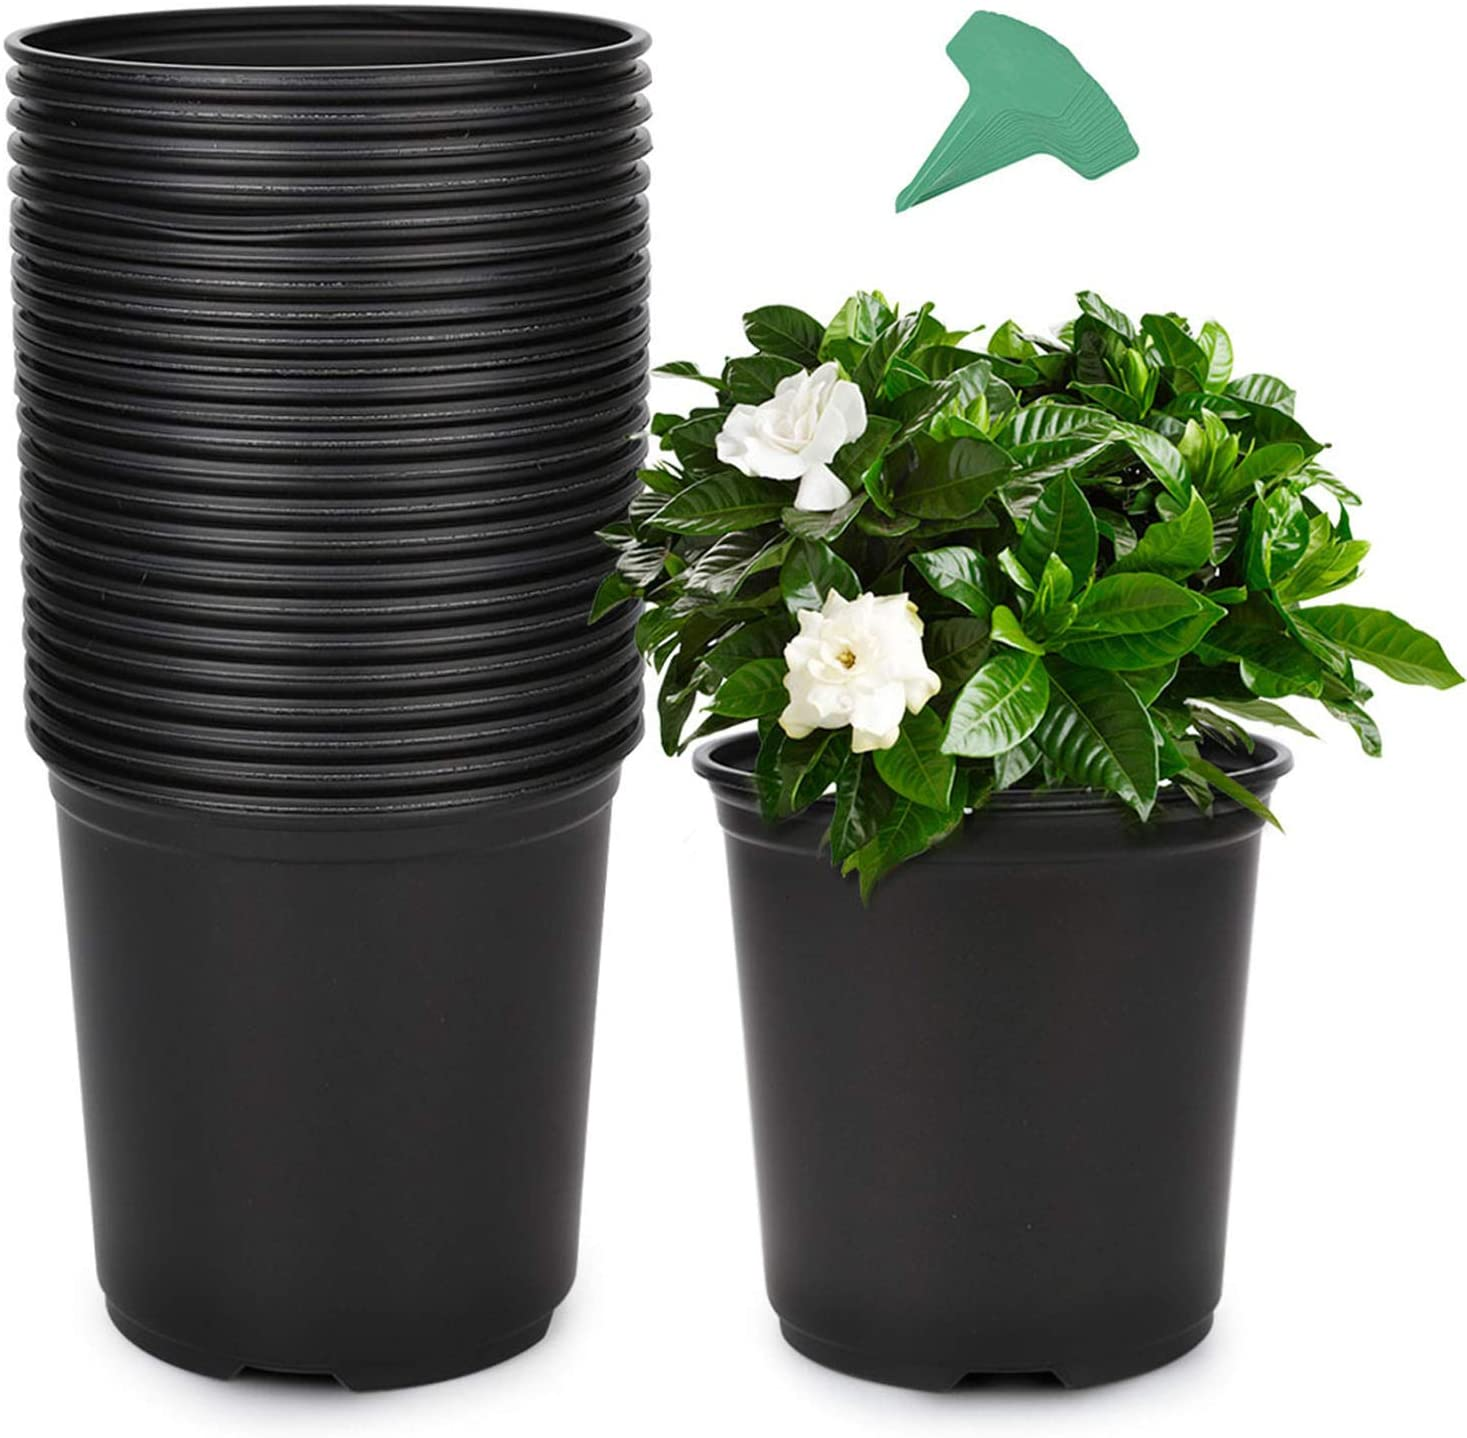 GROWNEER 48 Packs 0.7 Gallon Flexible Nursery Pot Flower Pots with 15 Pcs Plant Labels, Plastic Plant Container Perfect for Indoor Outdoor Plants, Seedlings, Vegetables, Succulents and Cuttings 2.5Qt